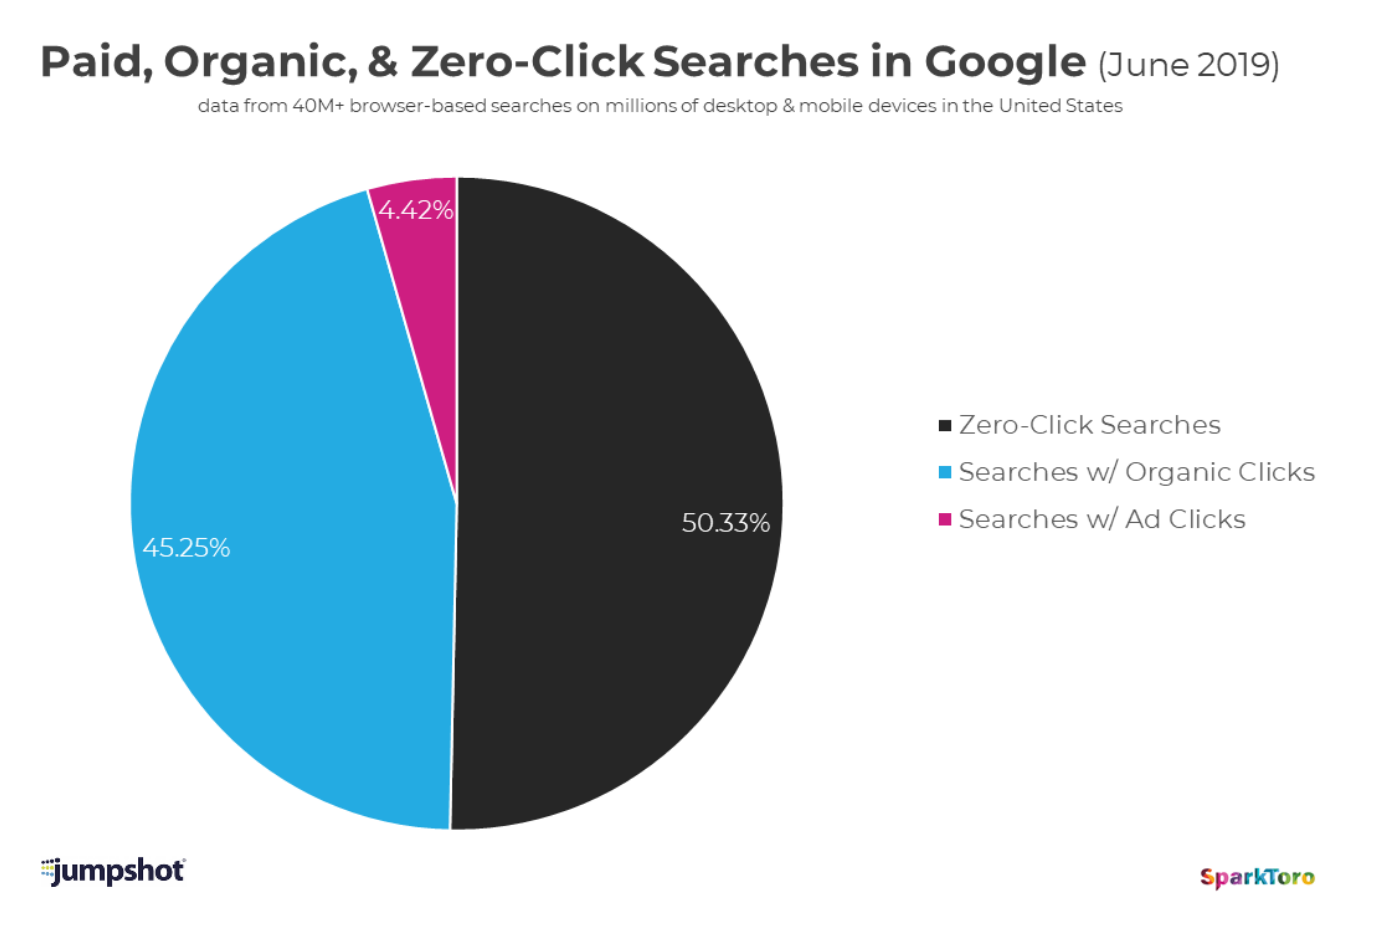 chart showing paid, organic, and zero-click searches in google.